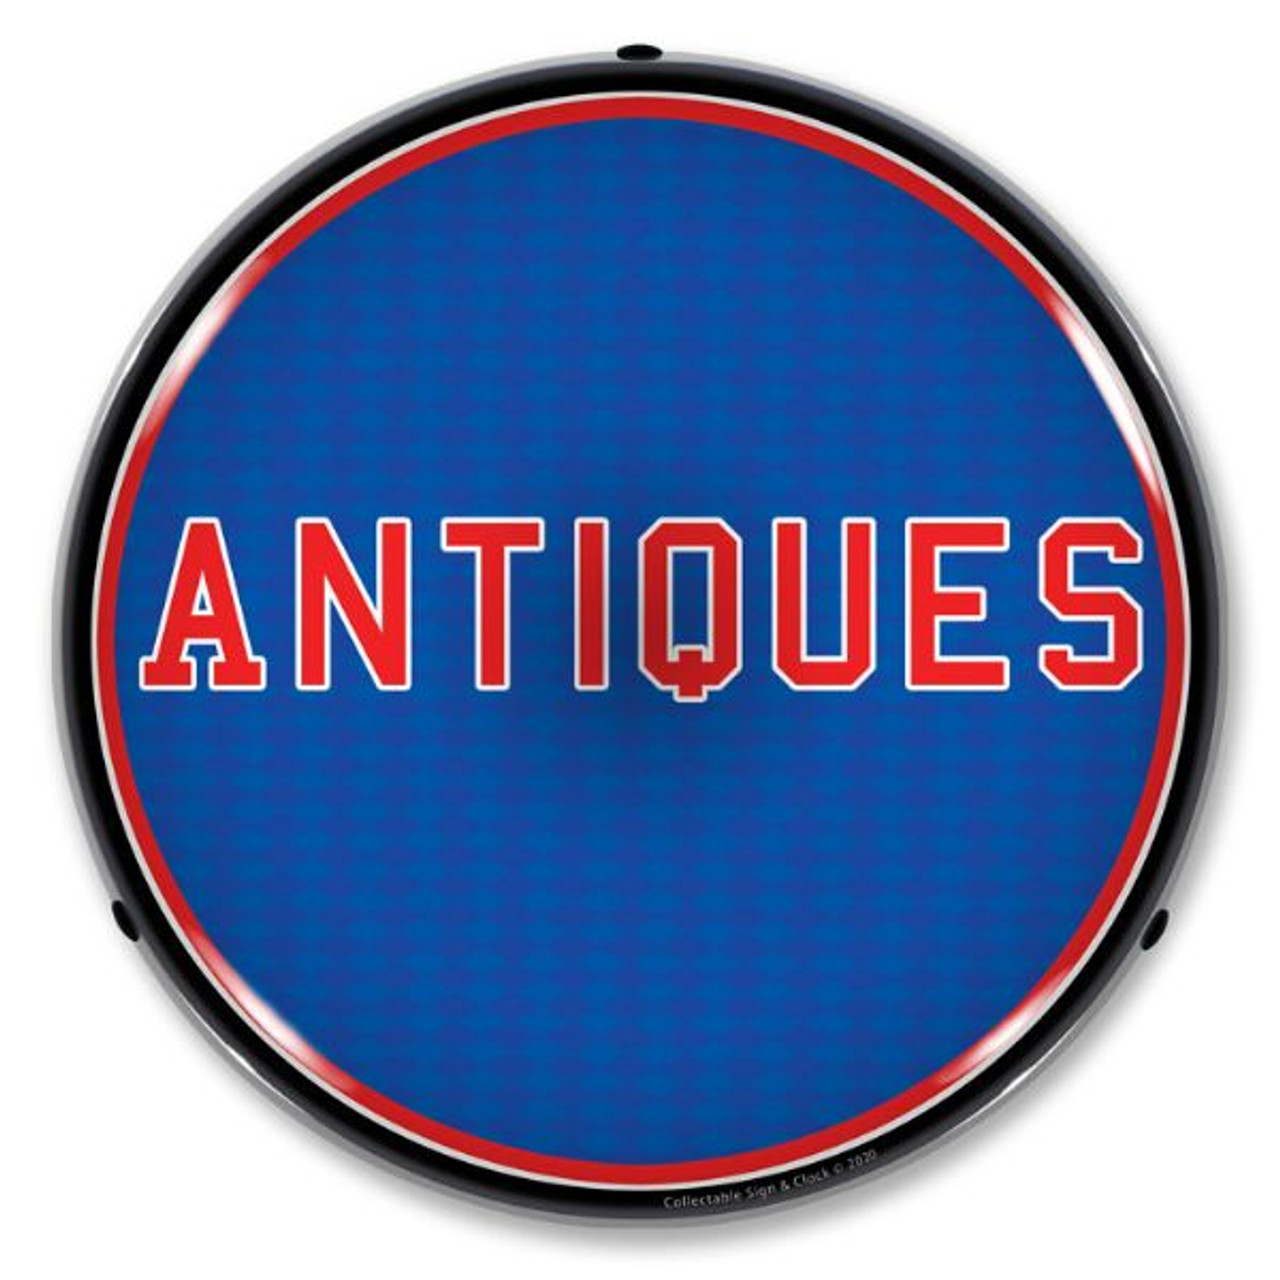 Antiques LED Lighted Business Sign 14 x 14 Inches